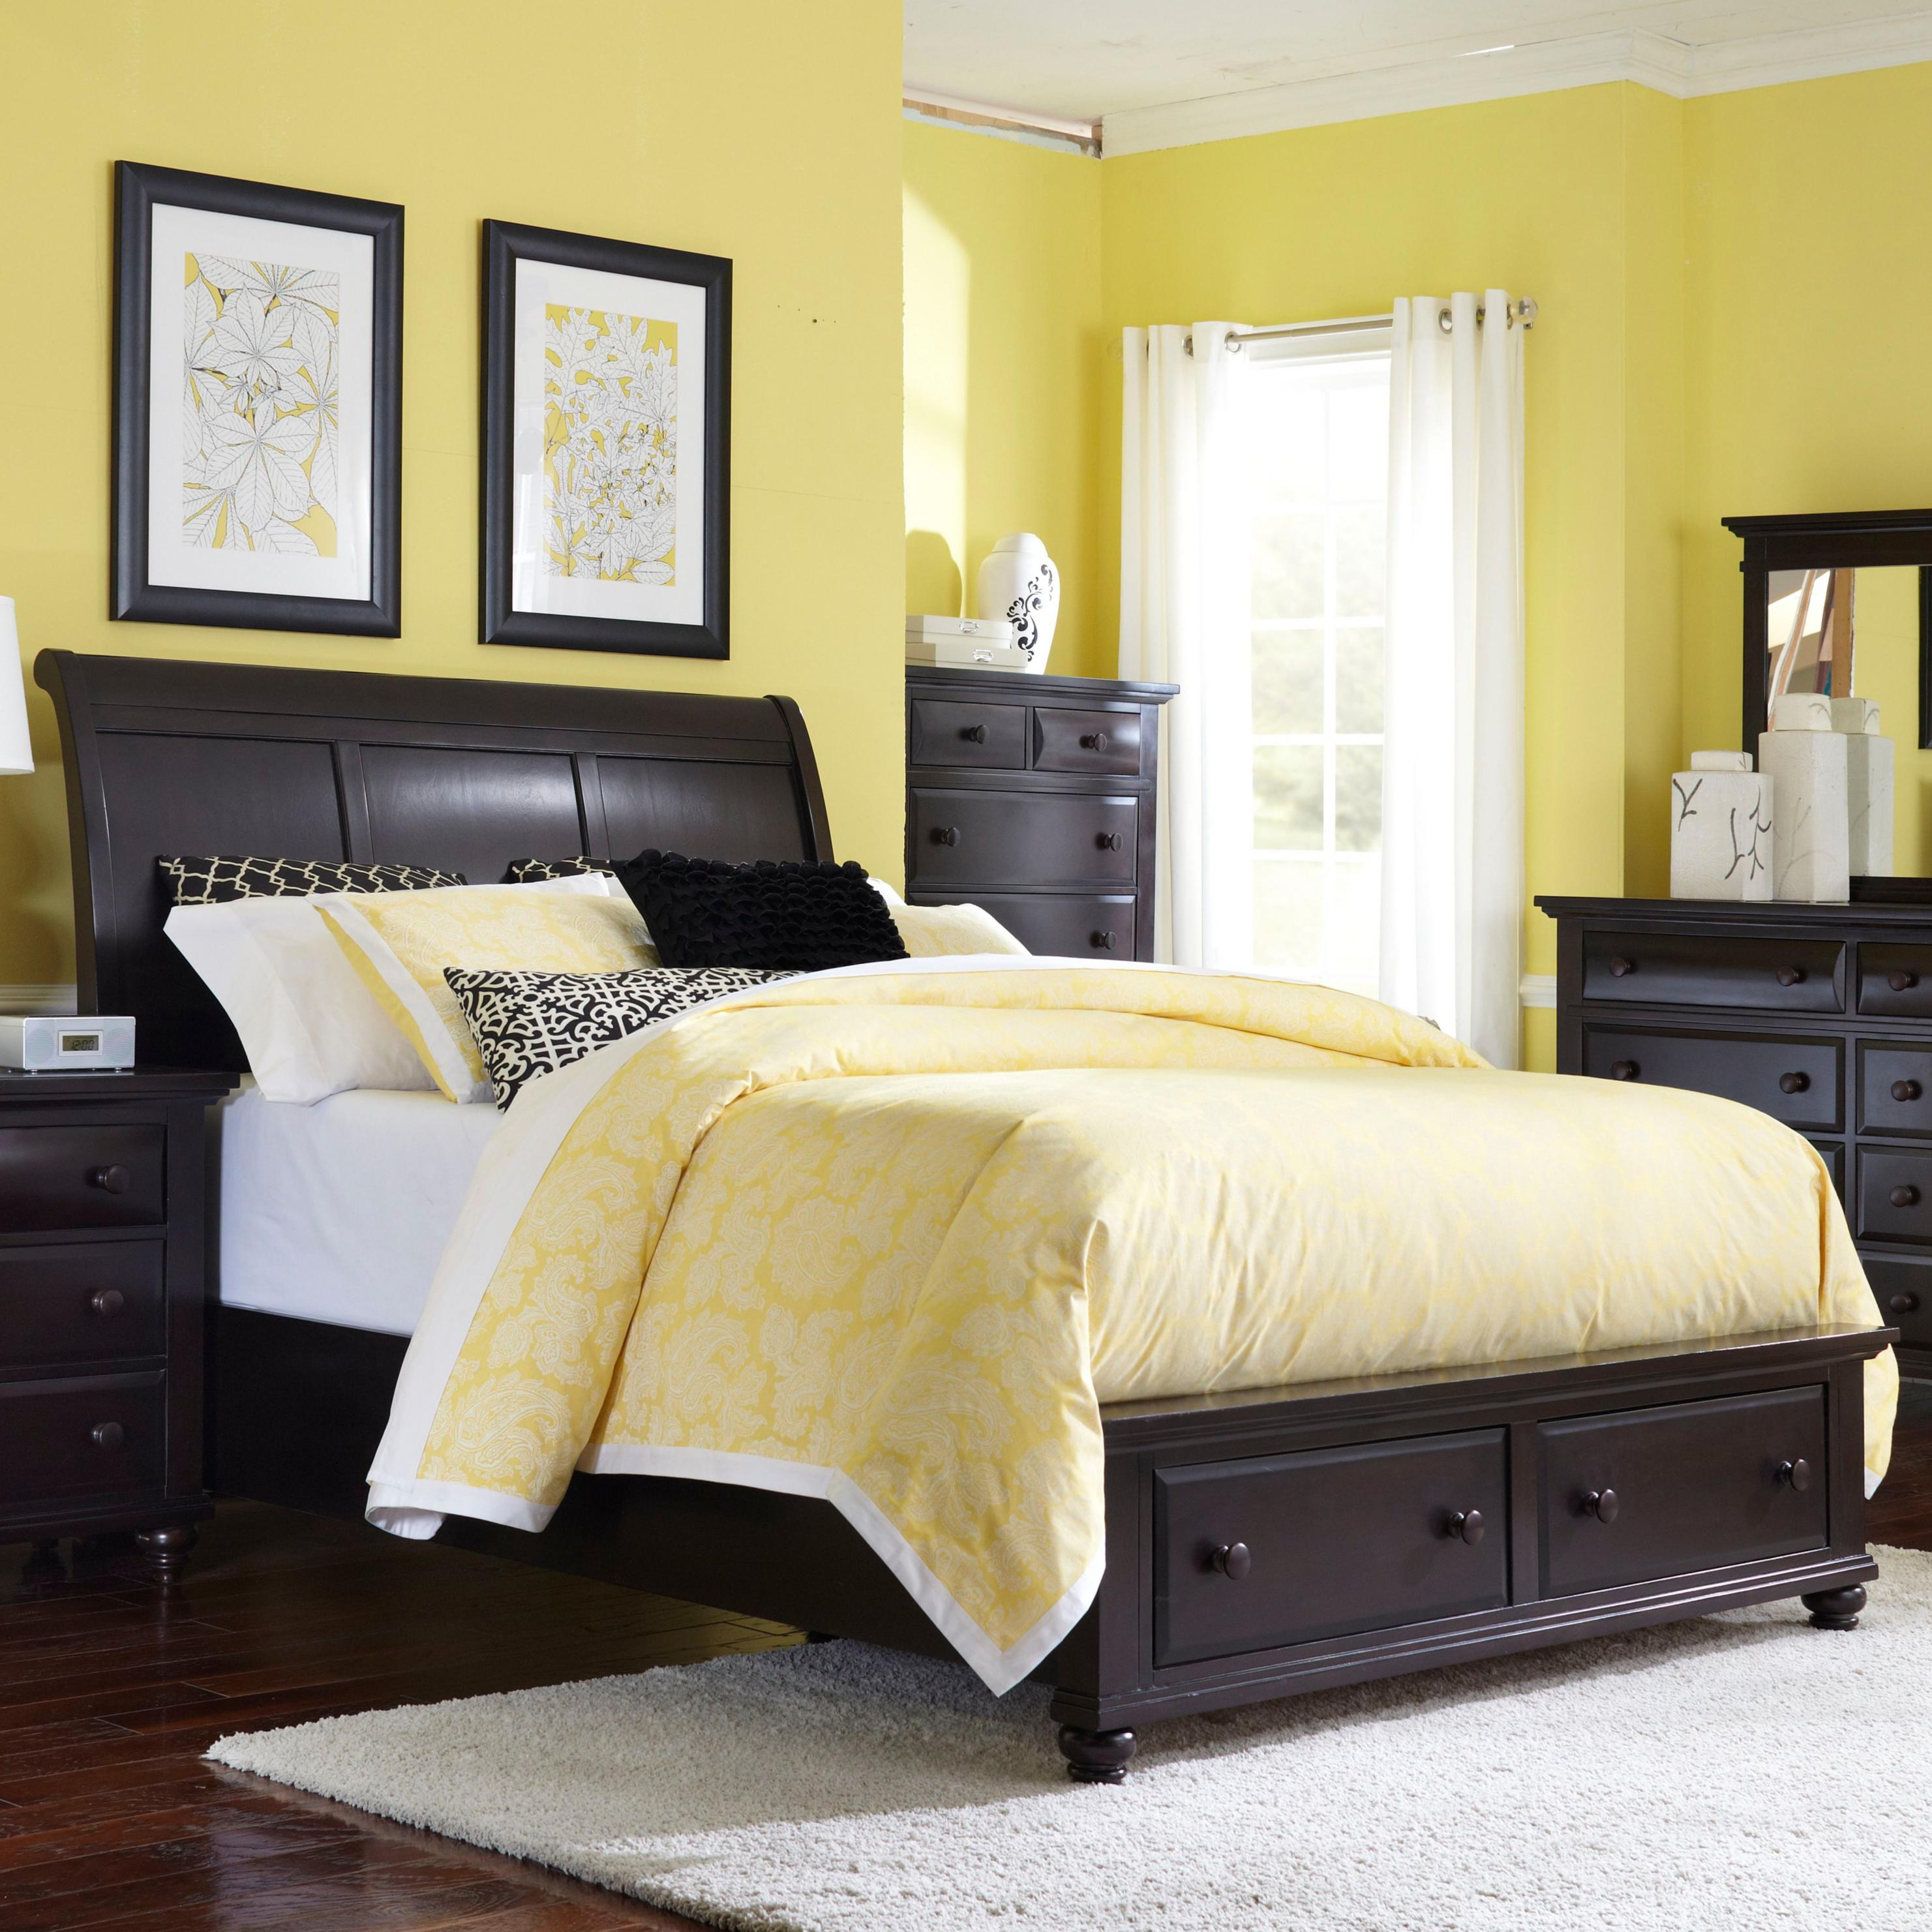 Broyhill Furniture Farnsworth King Sleigh Bed With Storage Fmg Local Home Furnishing Sleigh Beds